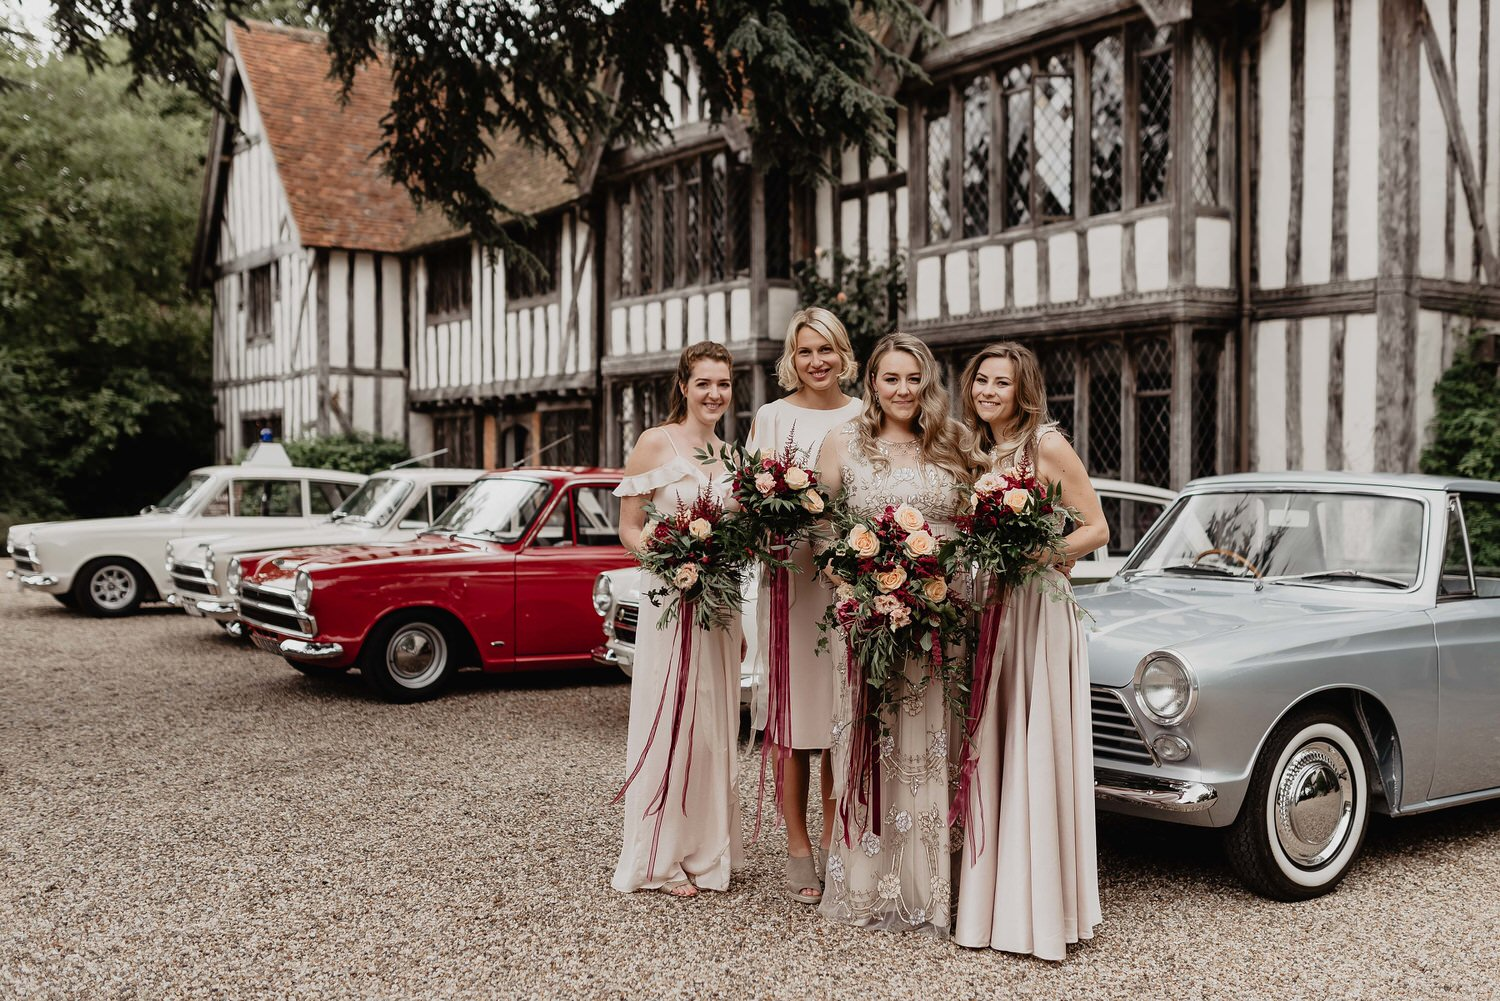 Image of wedding photography taken by a Hadleigh wedding photographer in the Suffolk area, photographing an outdoor wedding at Priory Hall in Hadleigh, Suffolk.